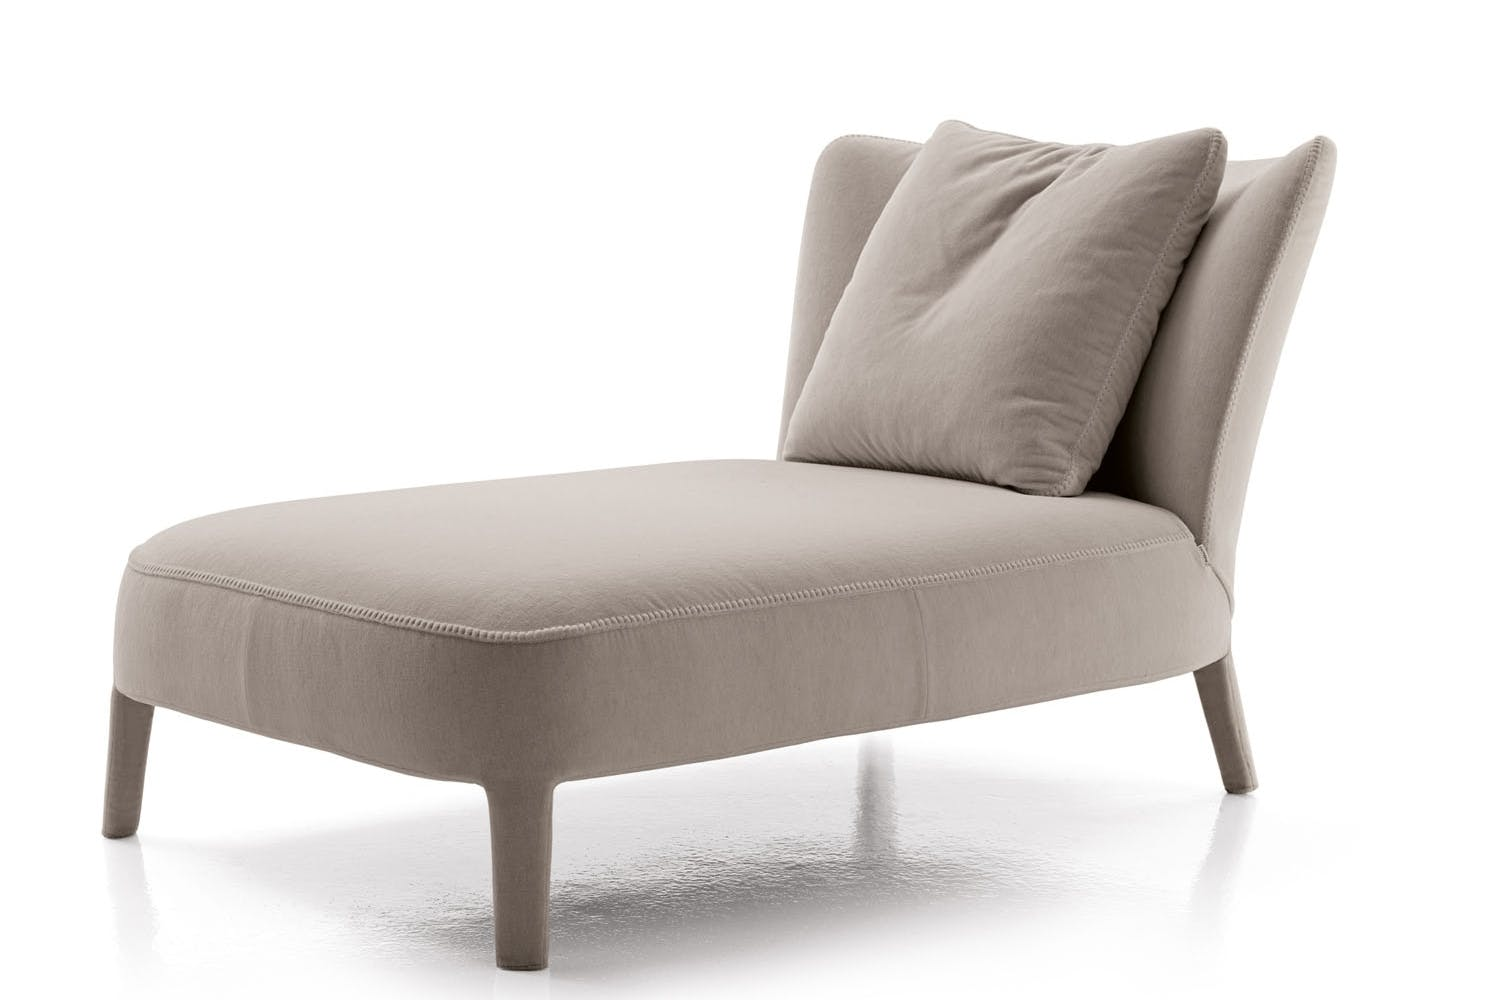 Febo chaise longue by antonio citterio for maxalto space for Chaise furniture melbourne